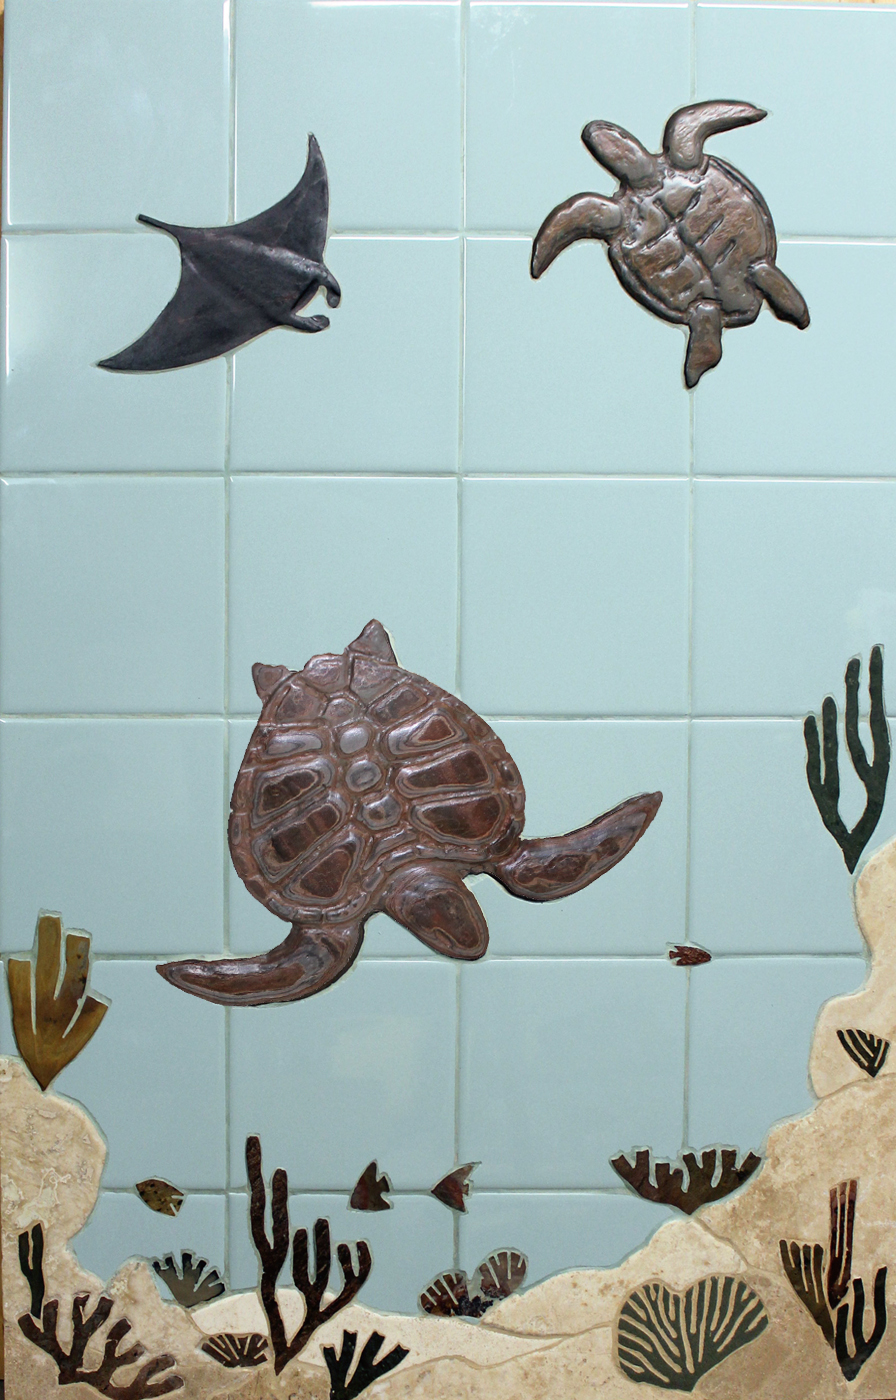 Hand cut stone art tile murals and wall sculptures d